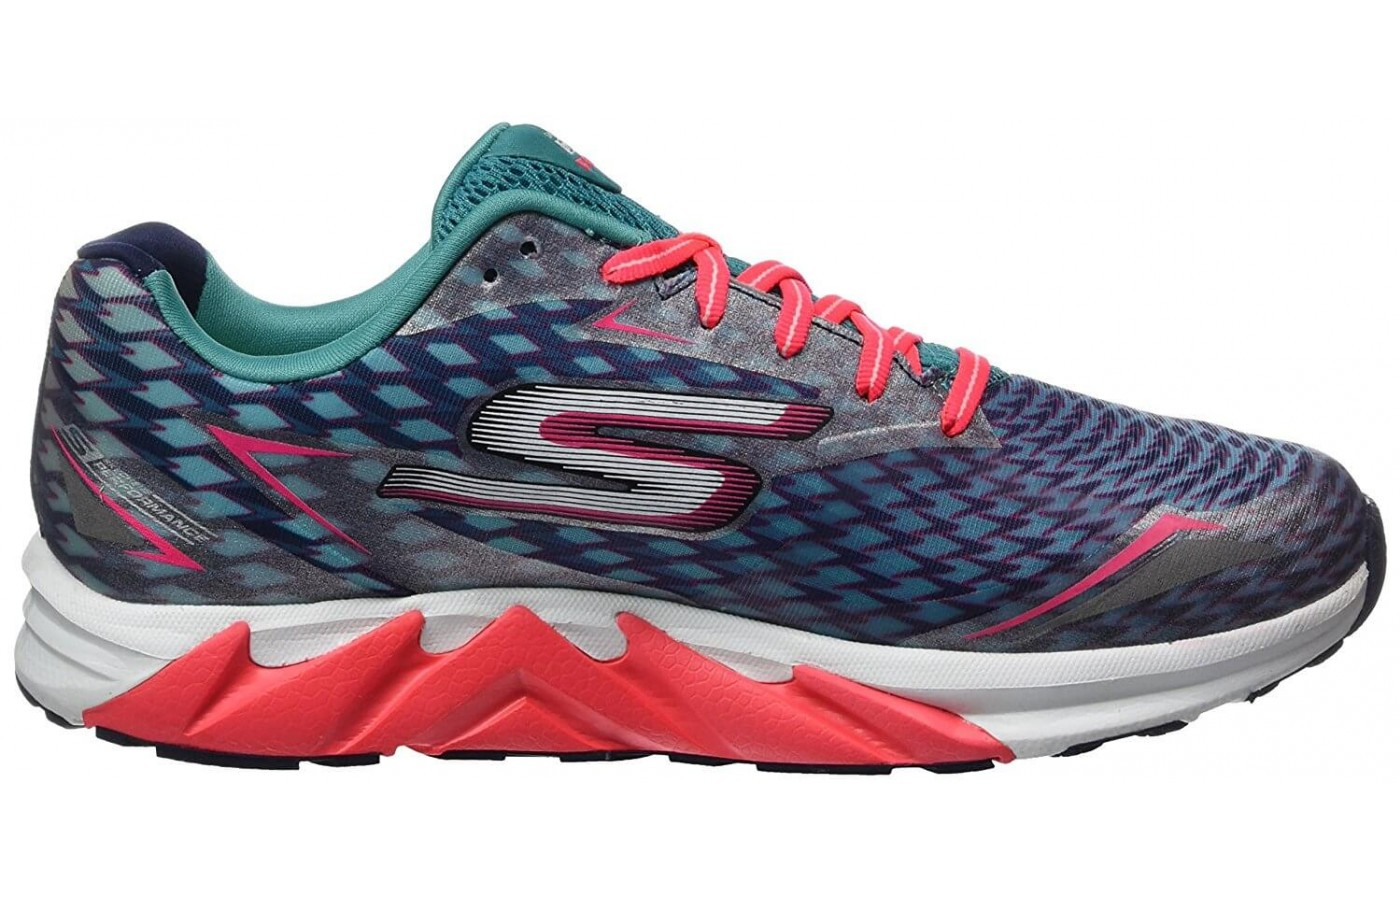 The Skechers GoRUN Forza 2 features high abrasion rubber material on its outsole